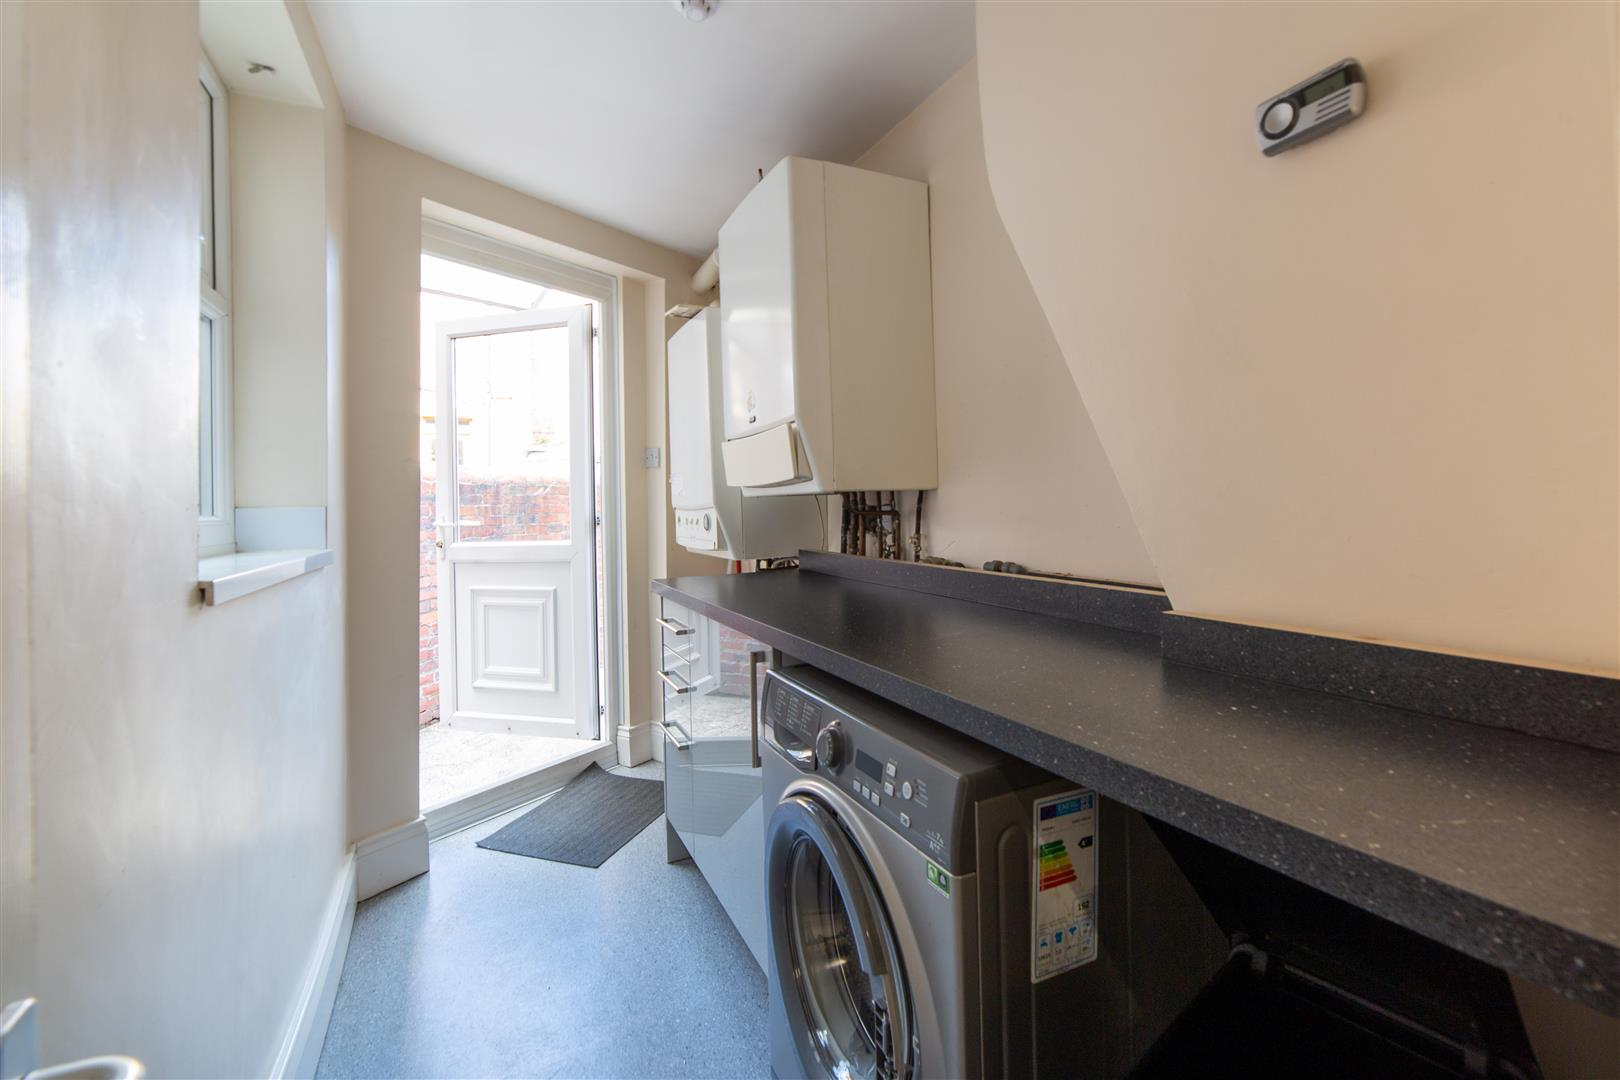 8 bed terraced house to rent in Newcastle Upon Tyne, NE2 1JS 21